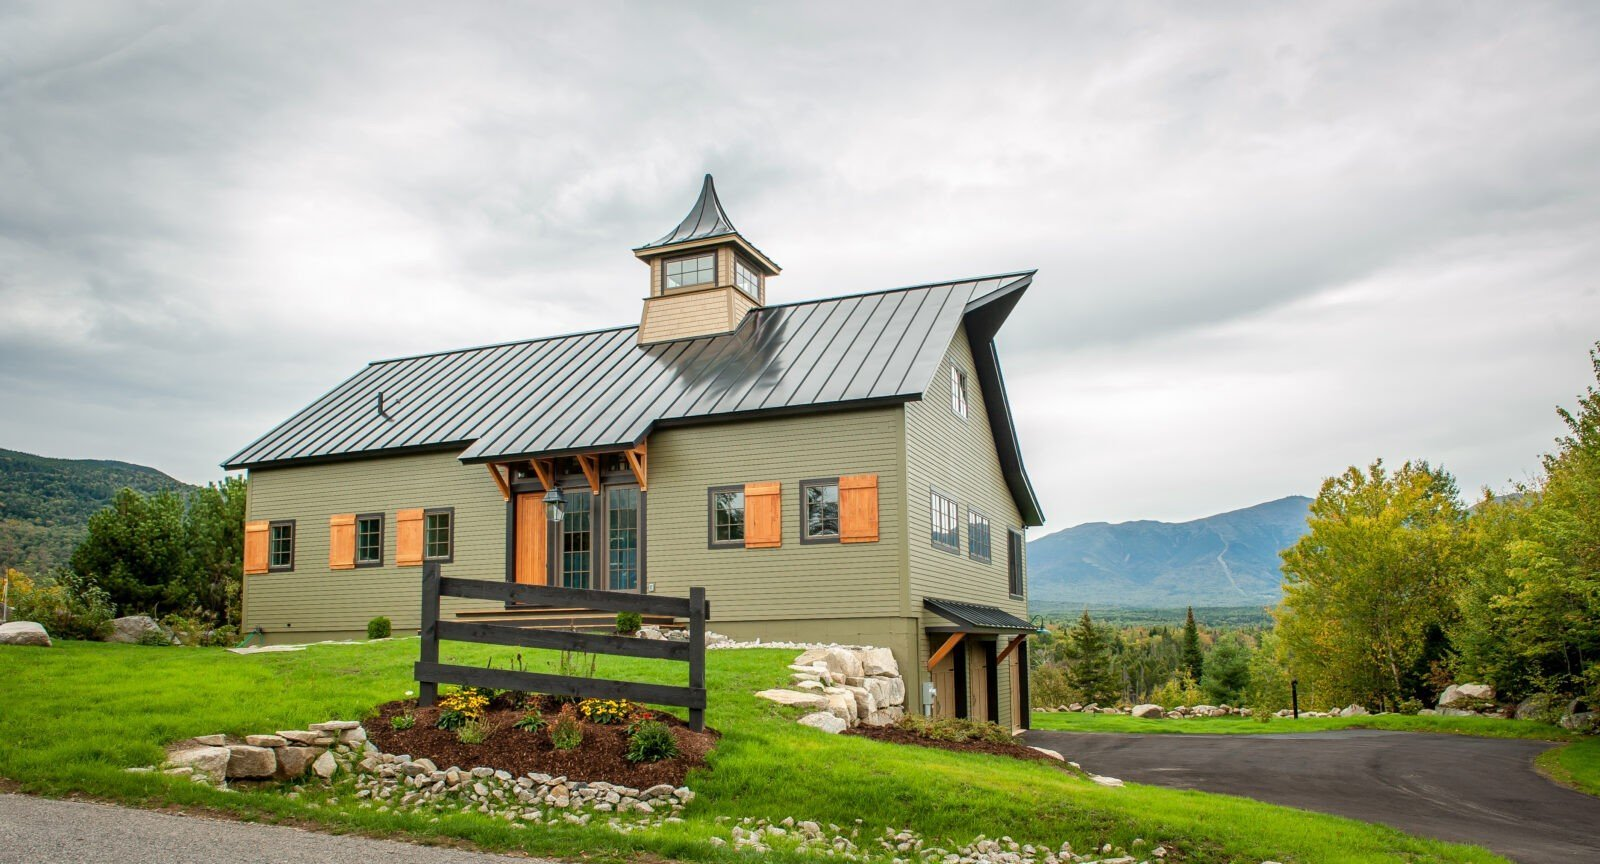 Top notch barn home plans from the ybh design team for Two story pole barn homes